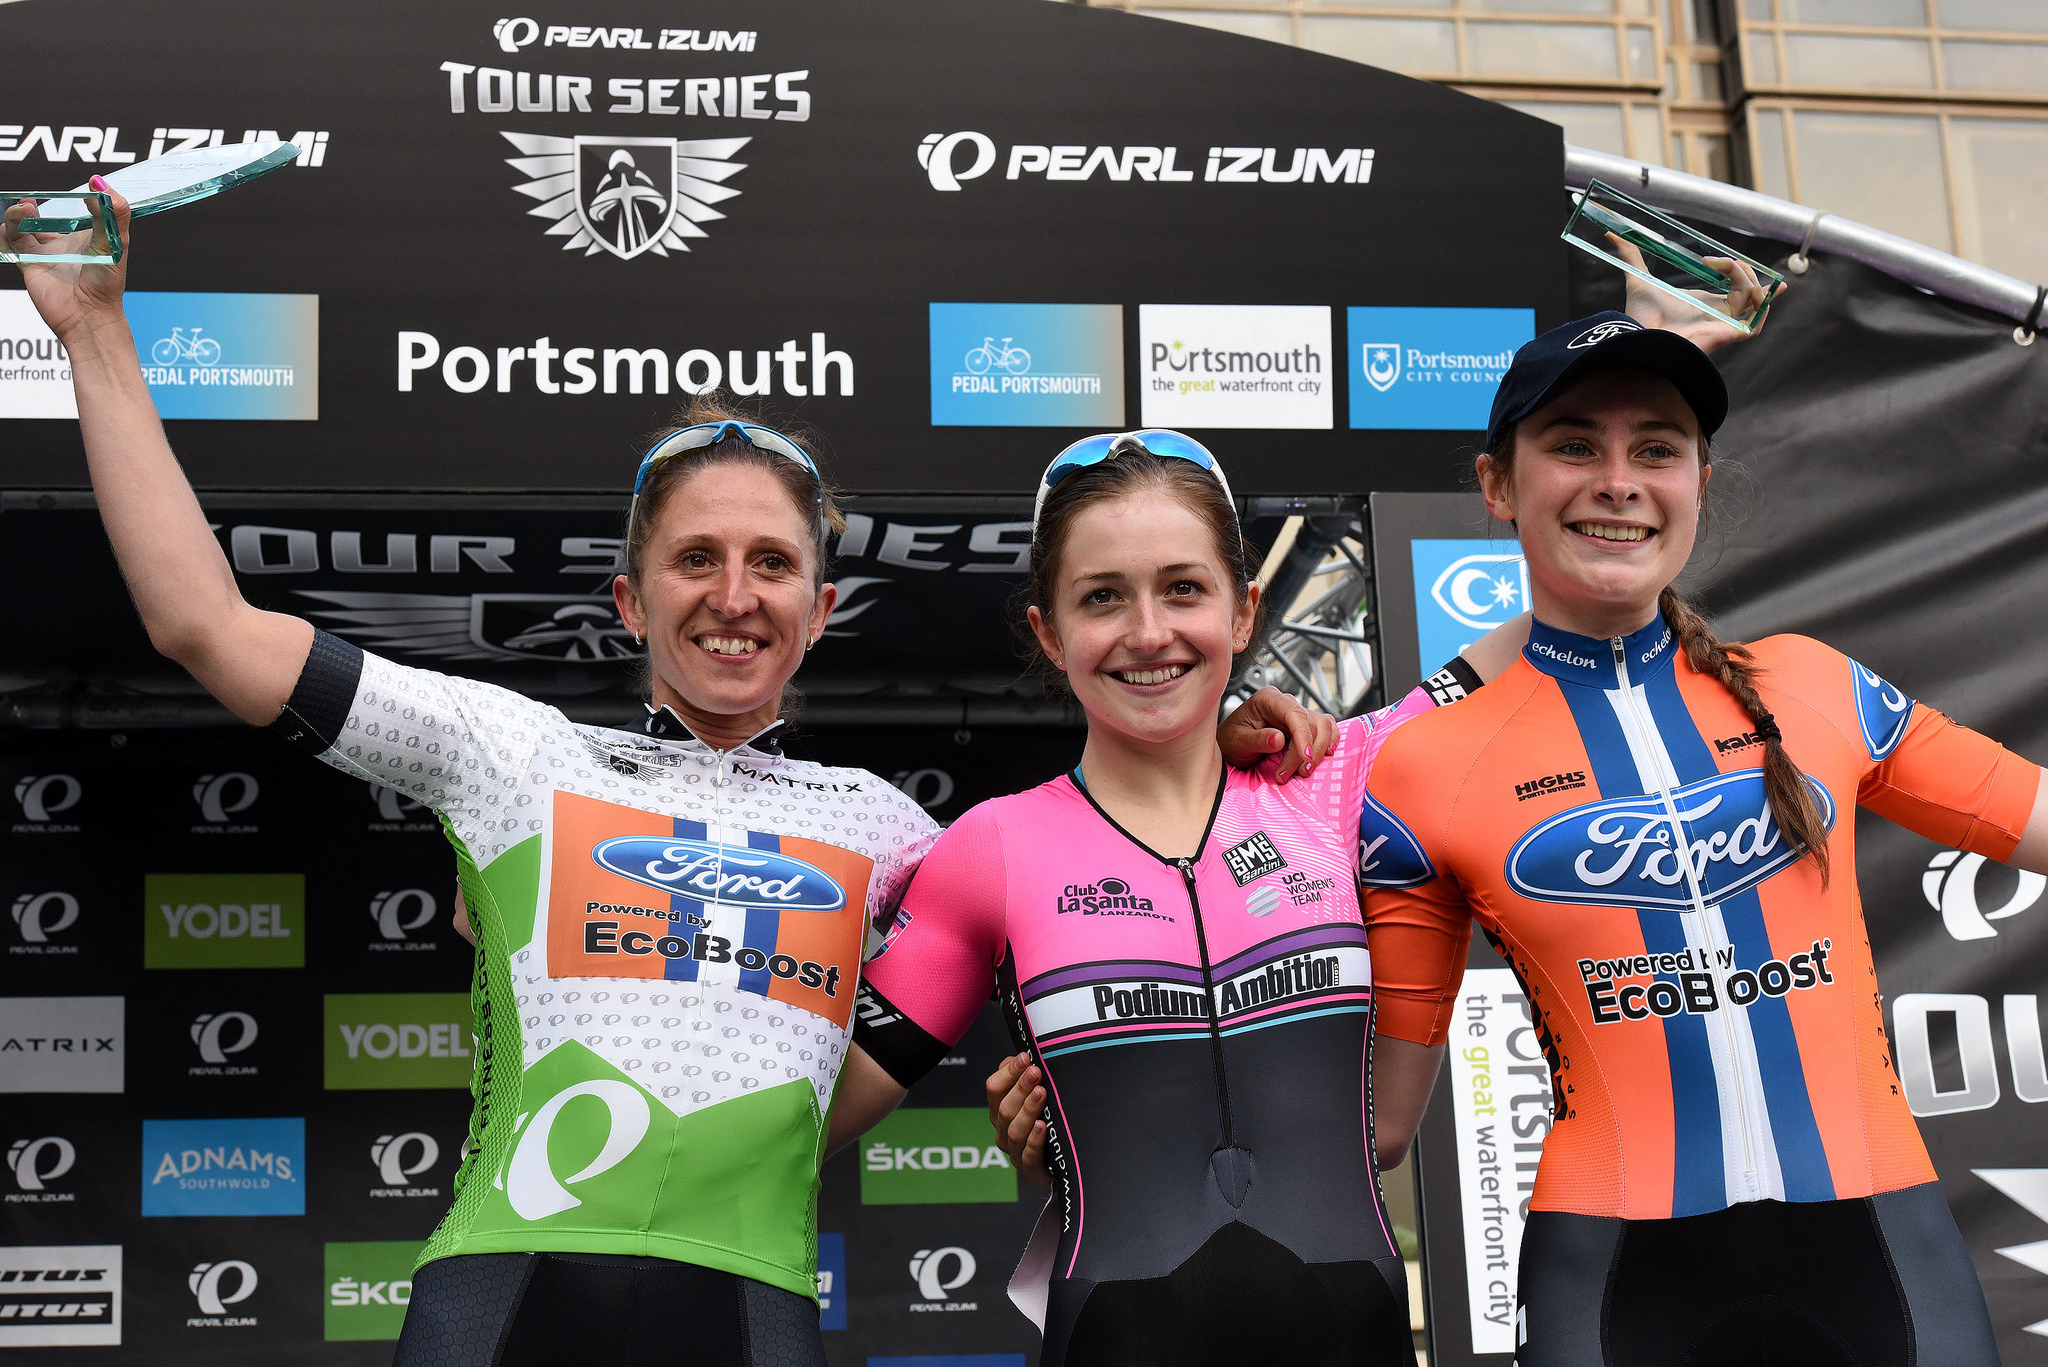 © Tour Series 2016 Grace Garner wins the individual classification. Nikki Juniper 2nd & Charlotte Broughton 3rd.